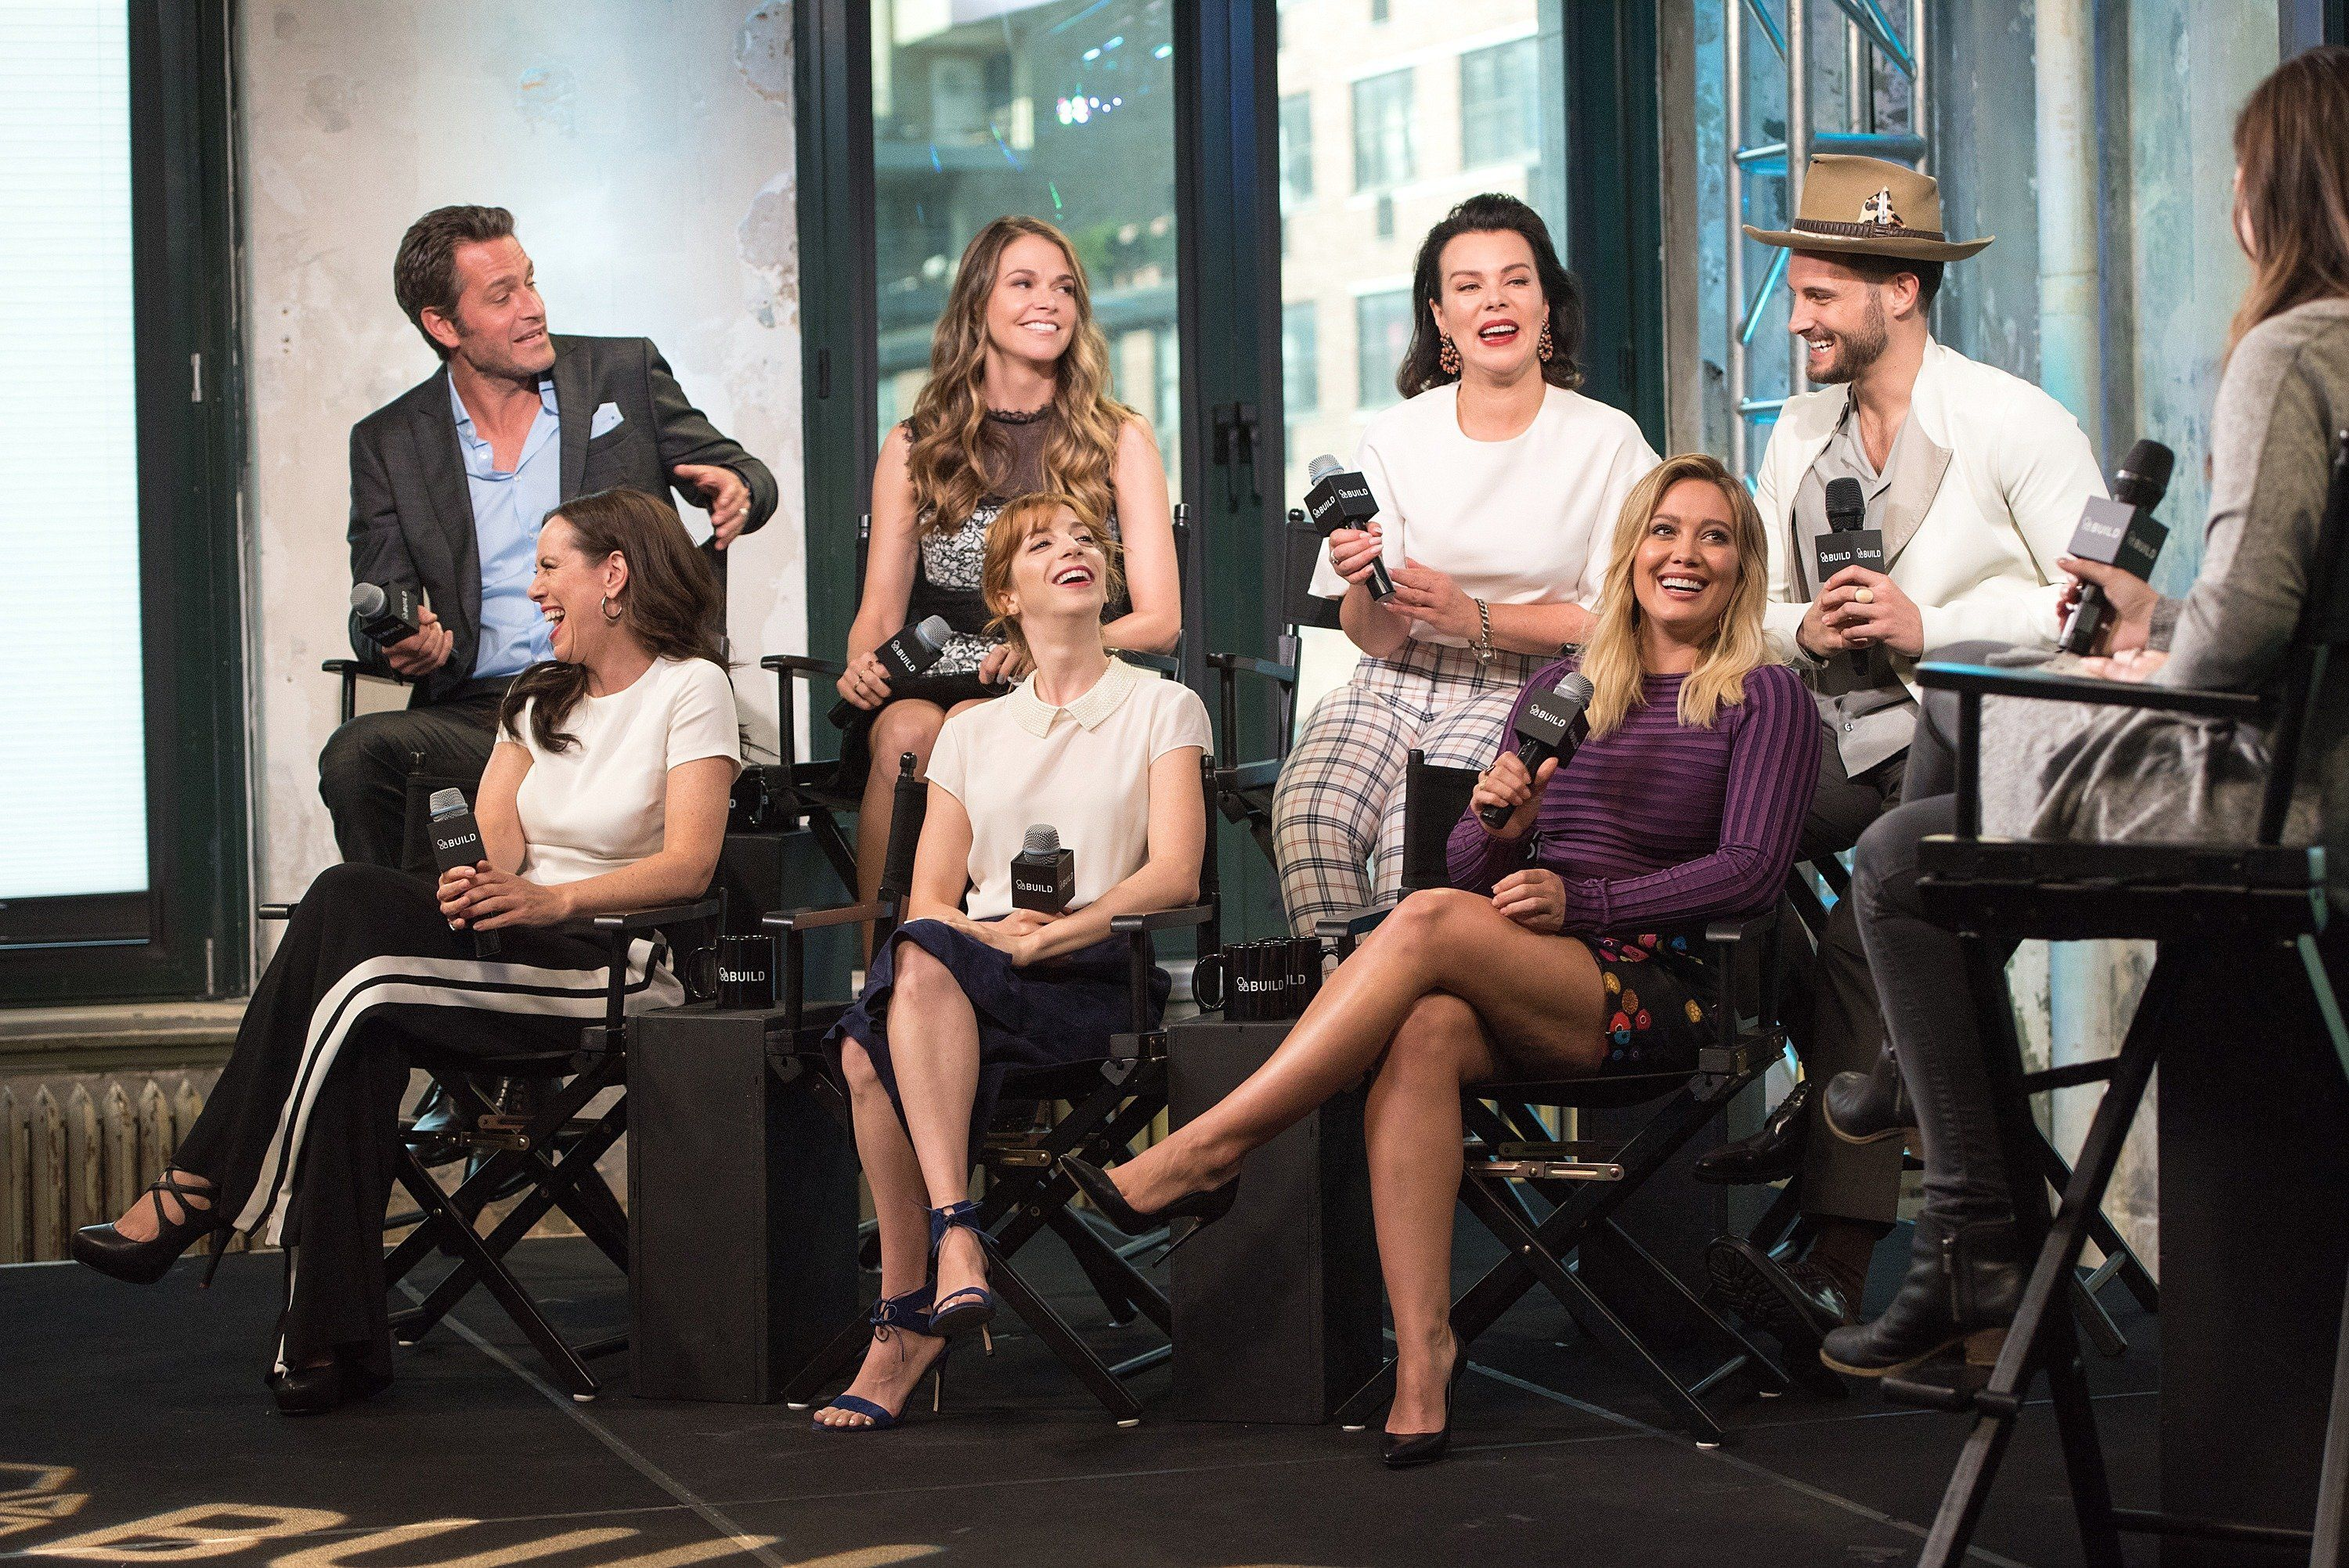 NEW YORK, NY - SEPTEMBER 26:  (Back L-R) Peter Hermann, Sutton Foster, Debi Mazar, Nico Tortorella, (Front L-R) Miriam Shor, Molly Bernard, and Hilary Duff attend the Build Series to discuss 'Younger' at AOL HQ on September 26, 2016 in New York City.  (Photo by Mike Pont/WireImage)